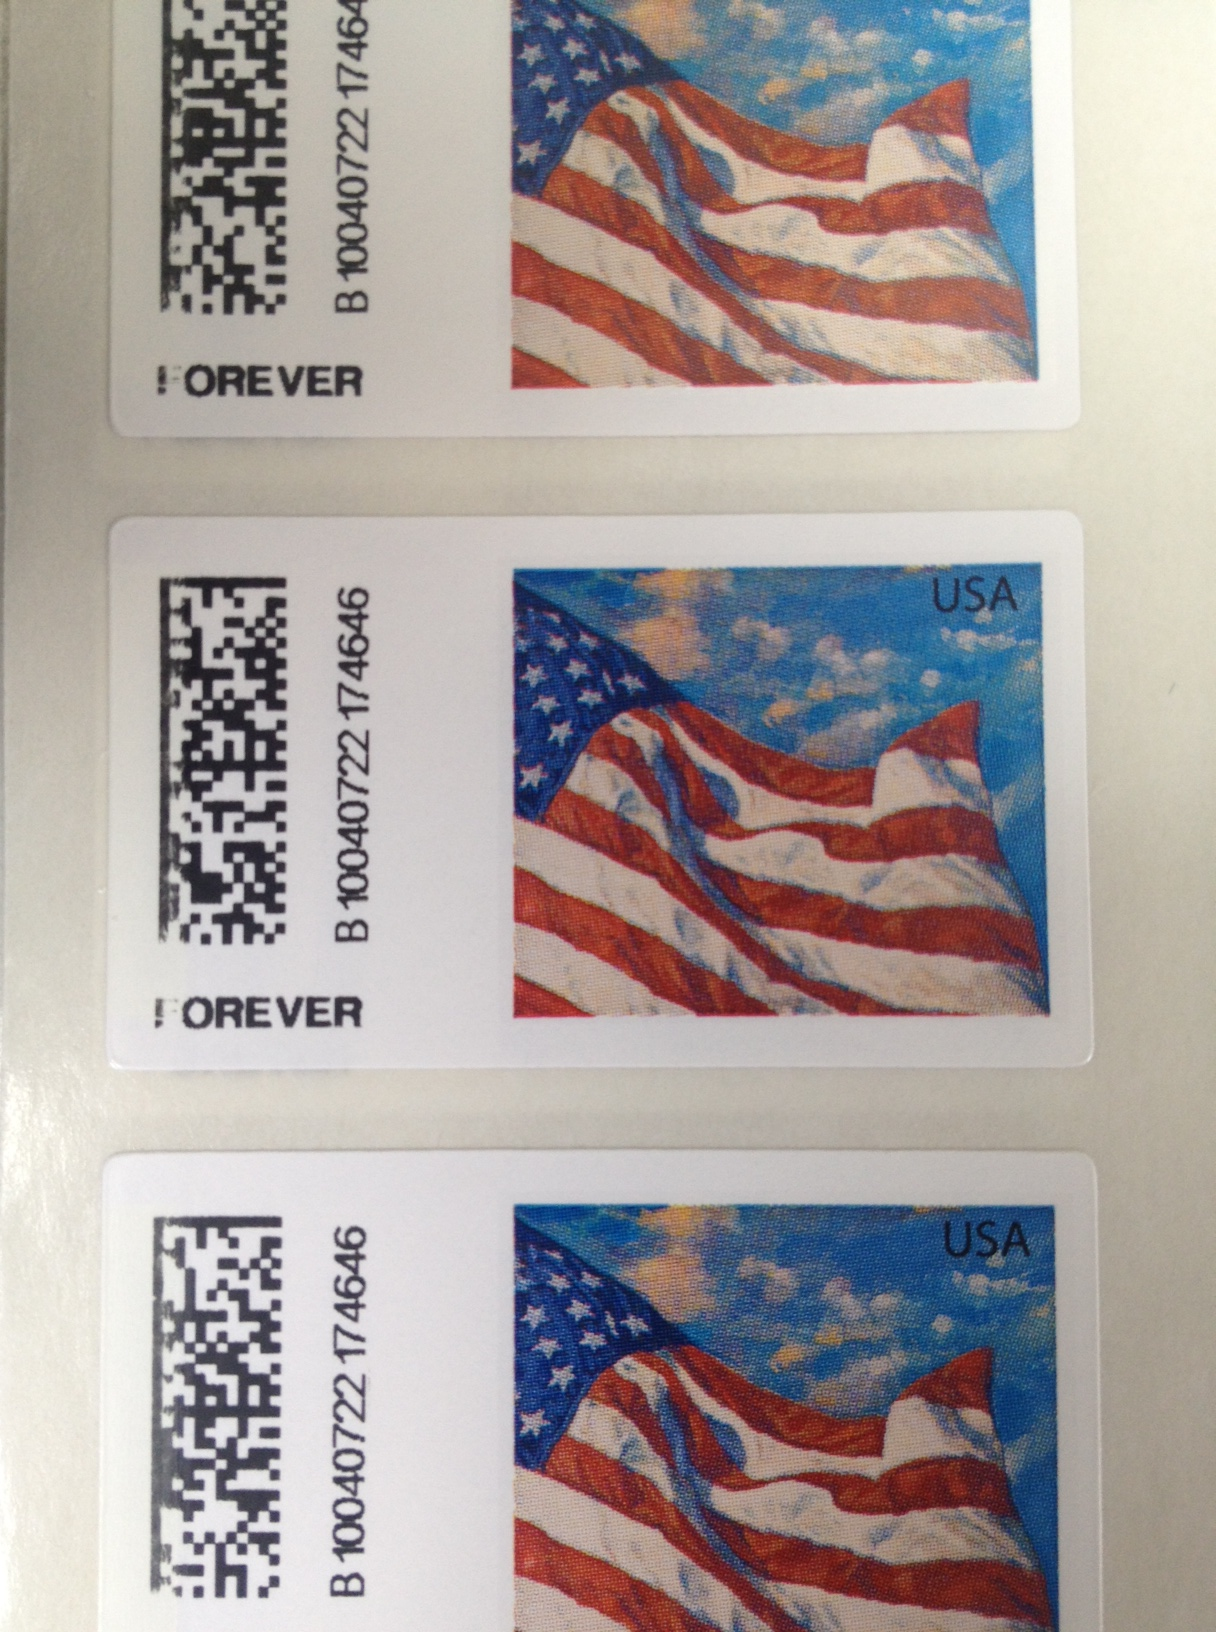 Cached All forever stamp images